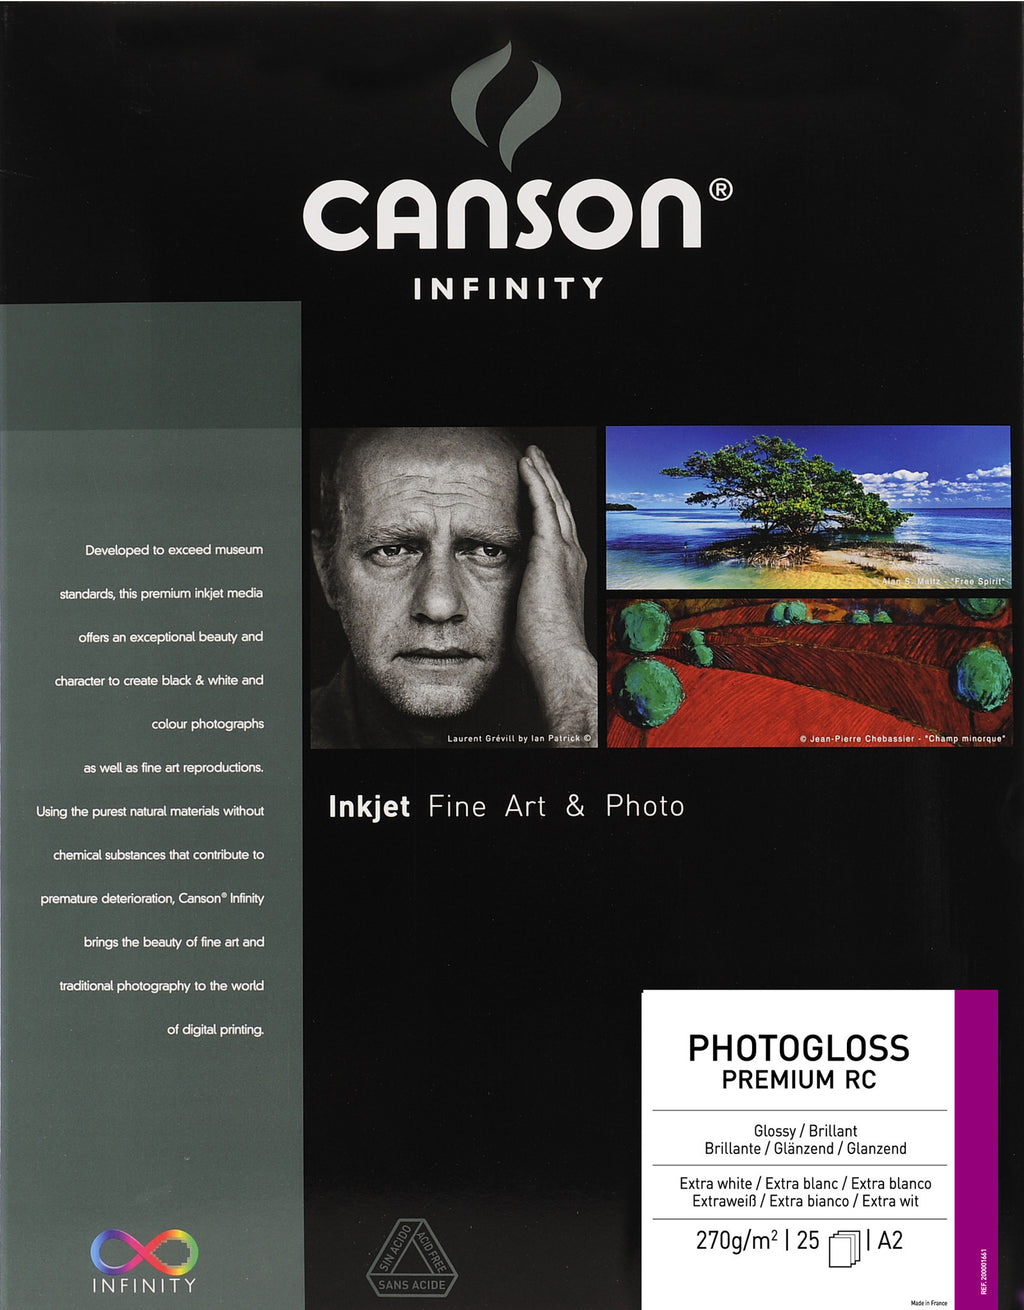 Canson Infinity Photo Gloss Premium RC - 270gsm - A2 - 25 sheets - Wall Your Photos